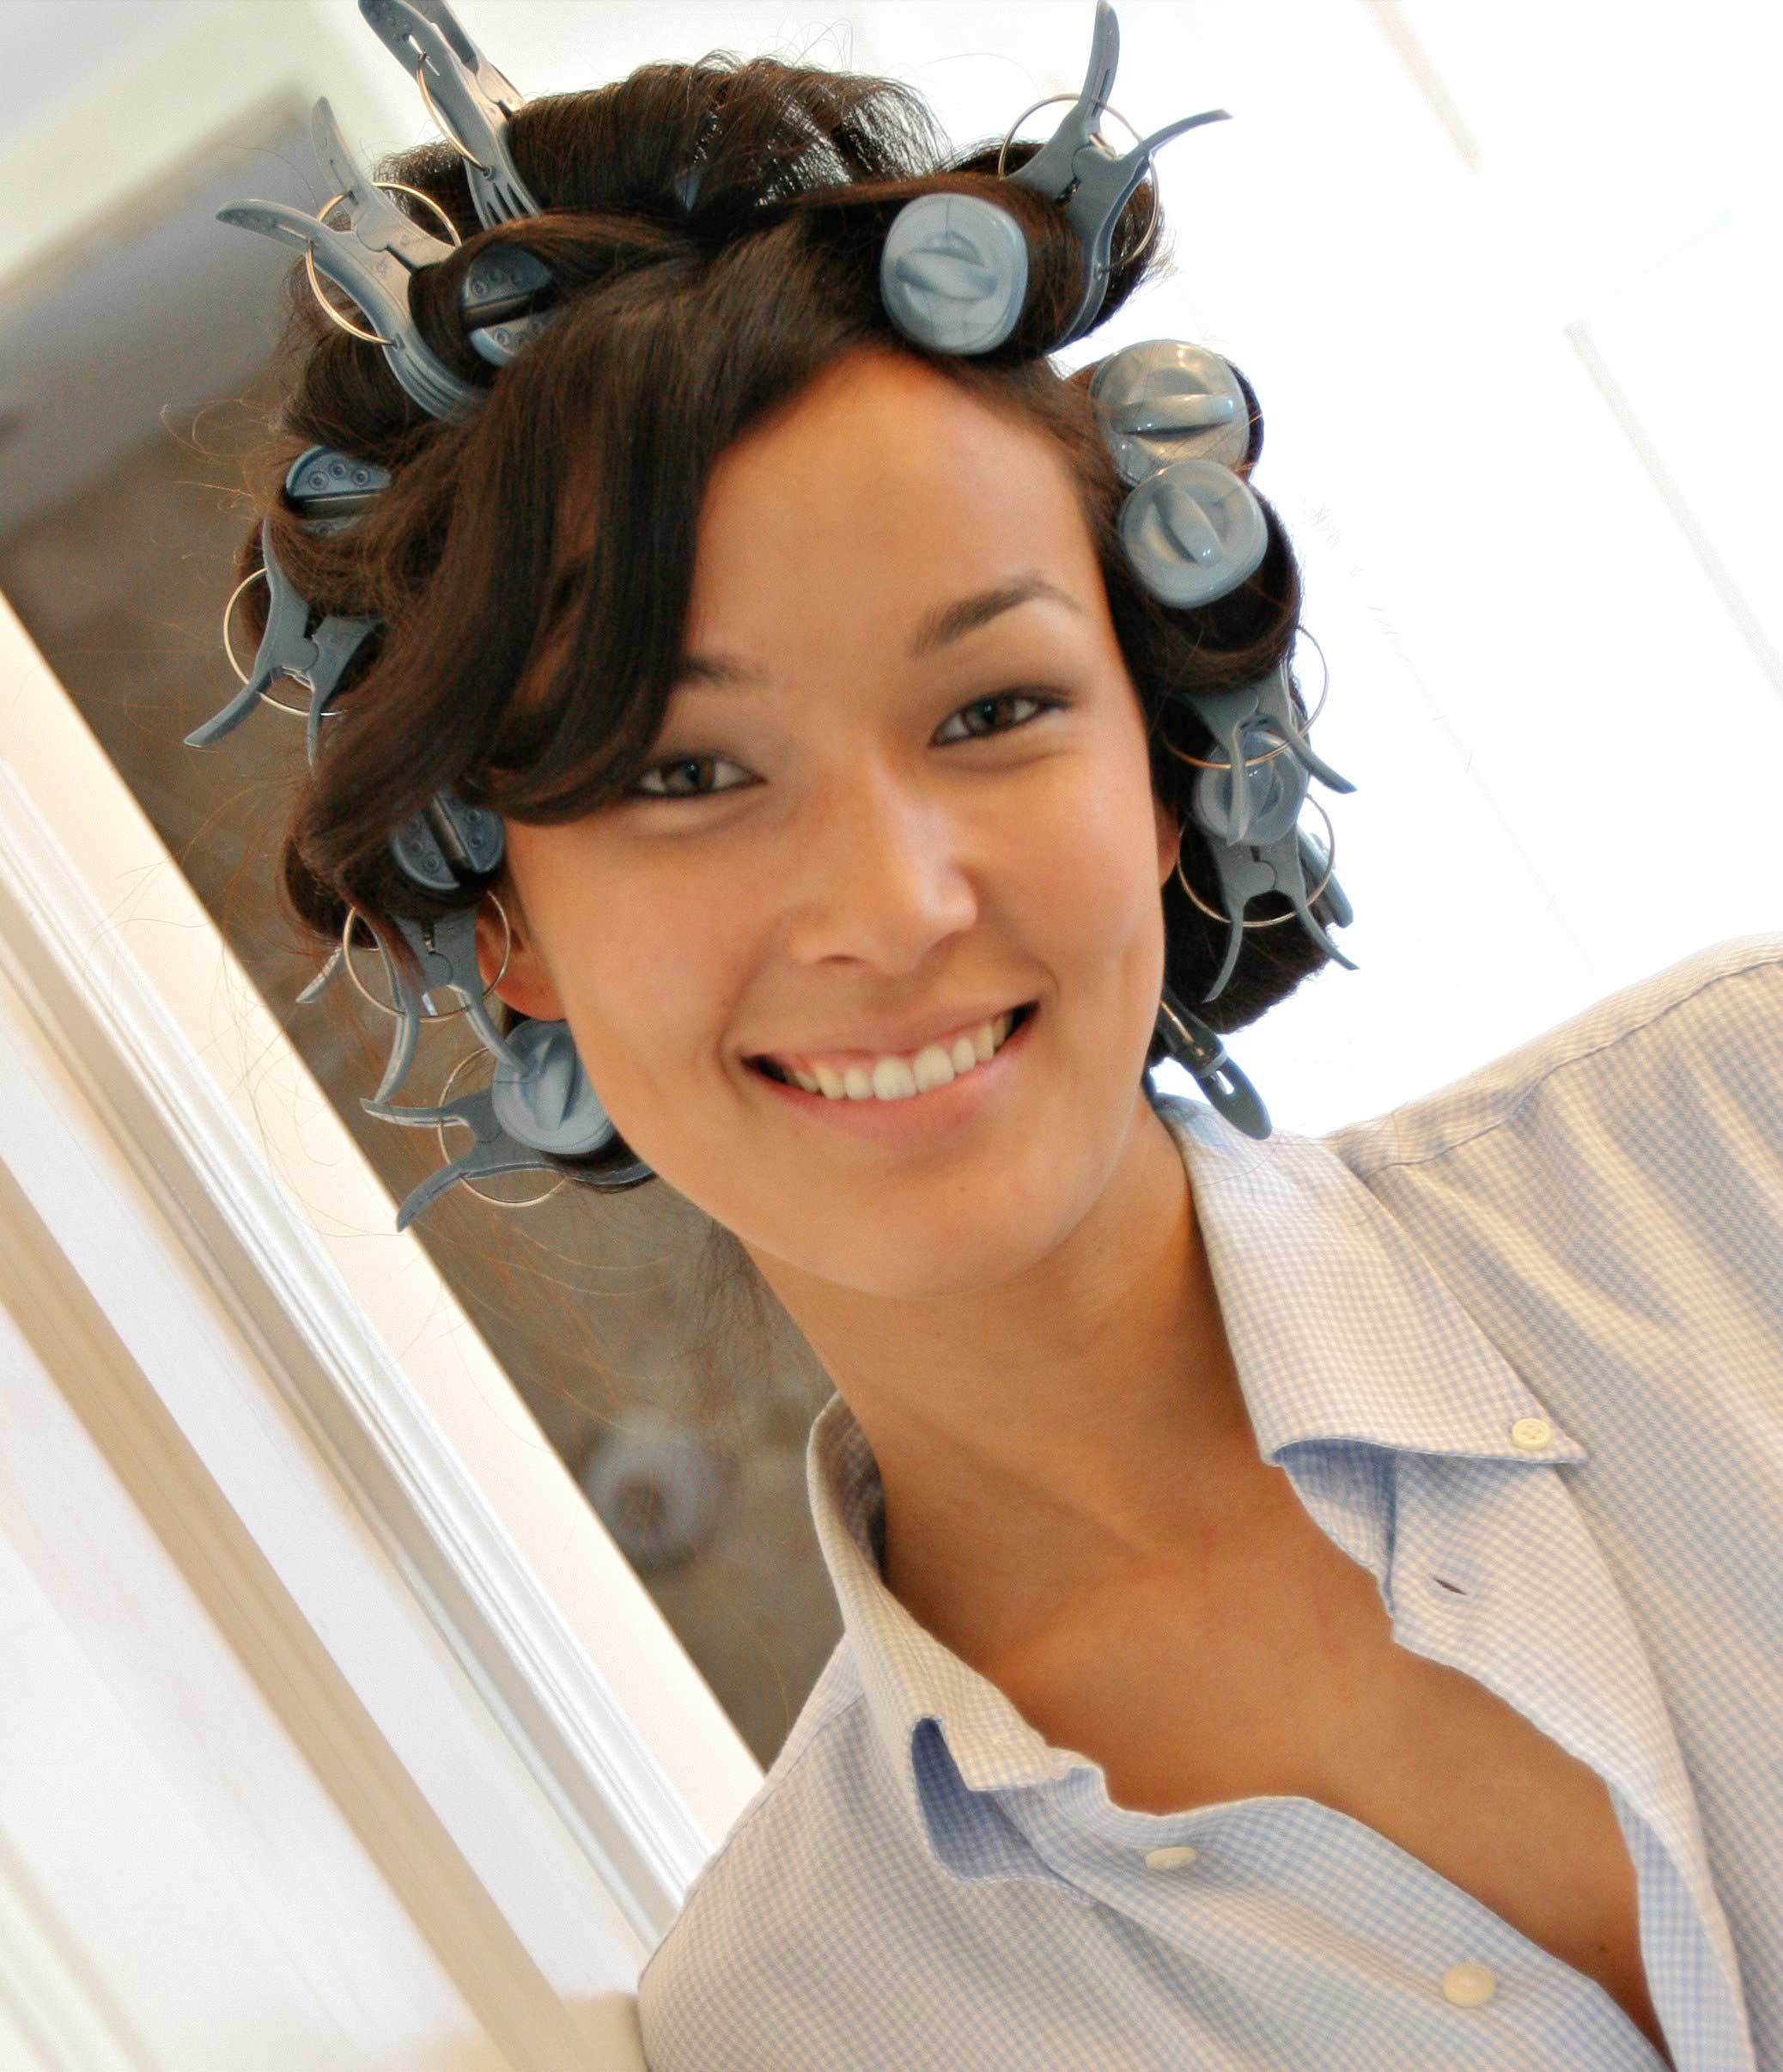 Destination wedding the good news is that the best wedding hairstyles Wedding ceremony quick hairstyles http curly hair styles